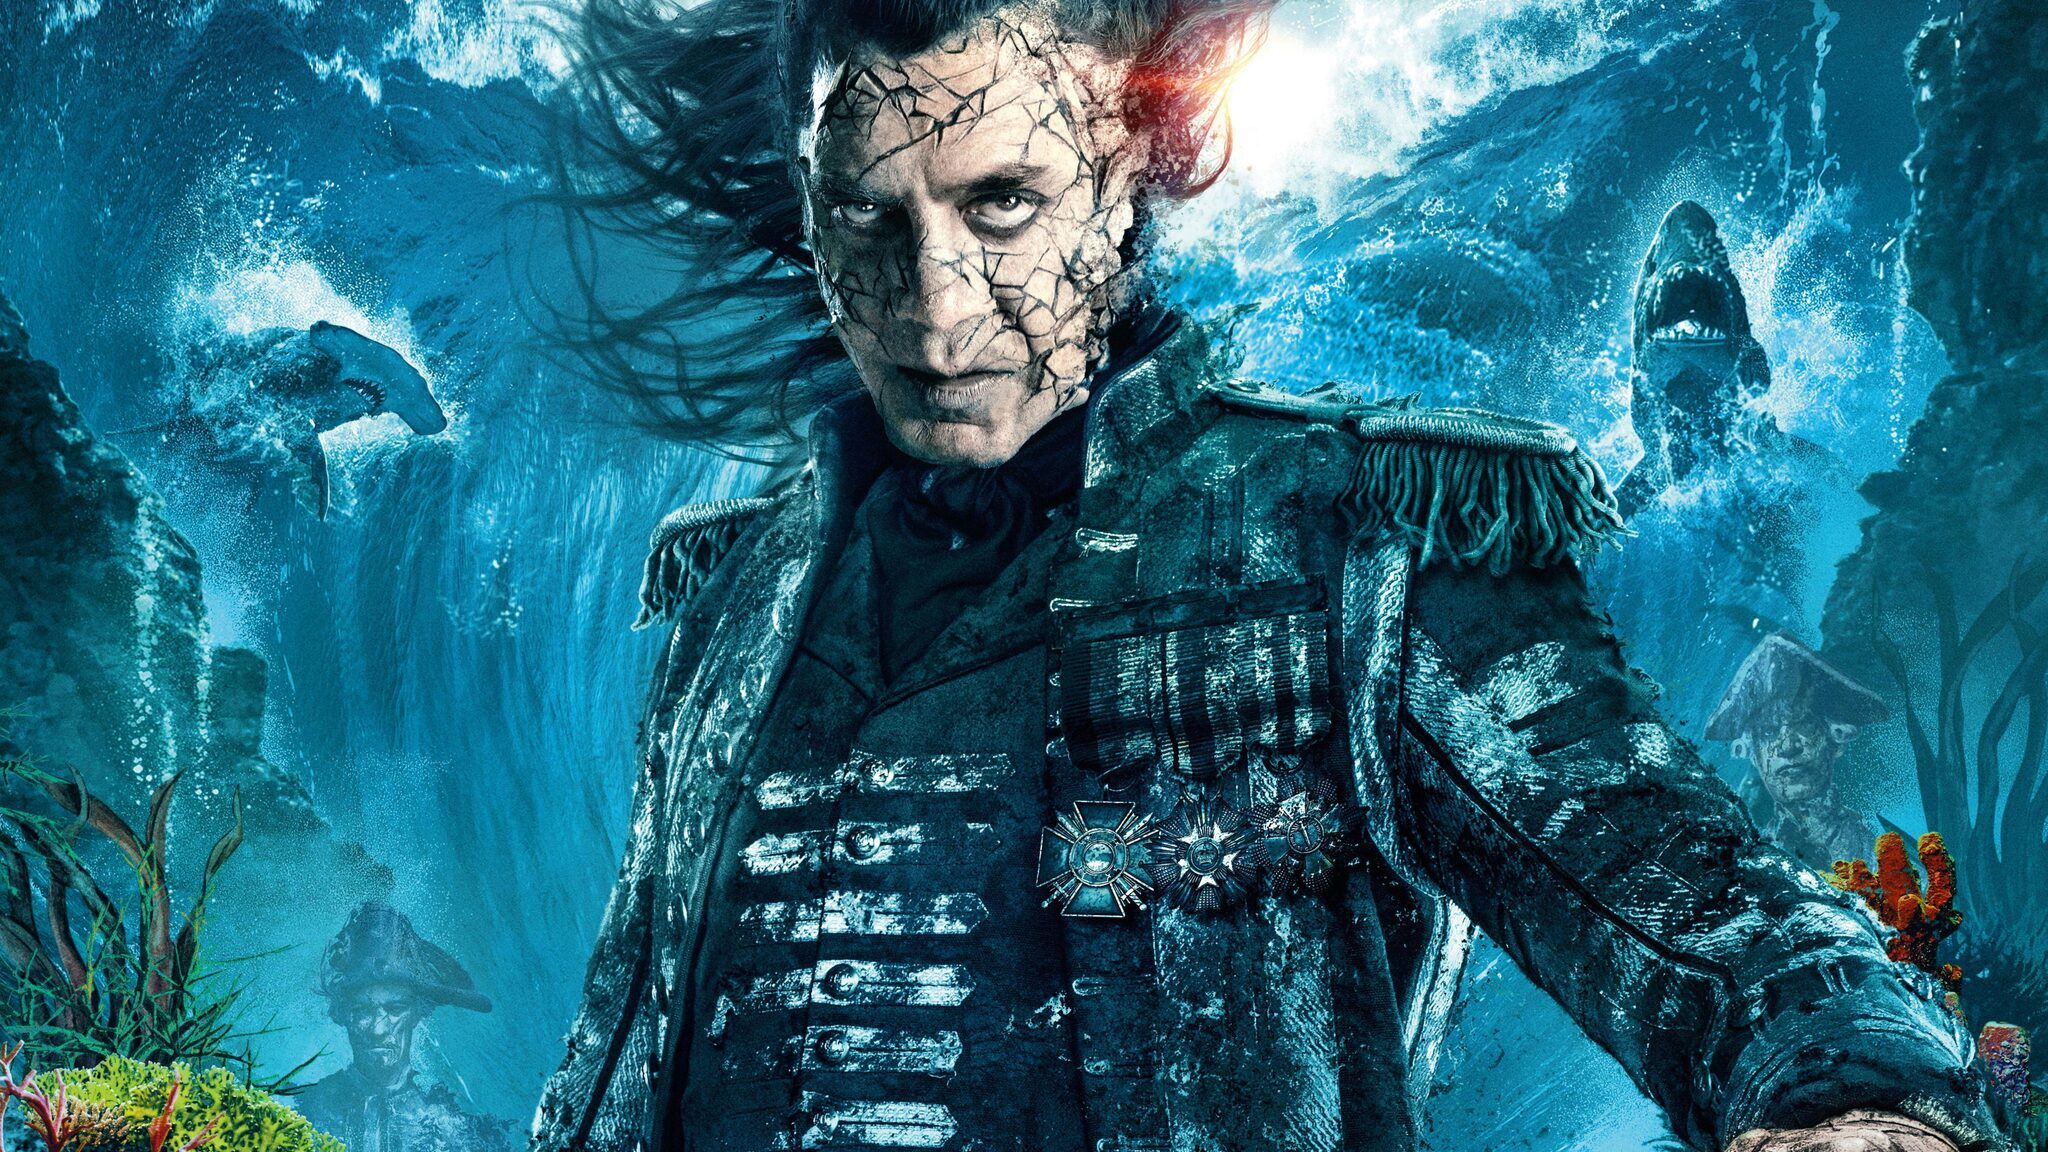 Dead Men Tell No Tales Wallpaper: 2048x1152 Captain Salaza In Pirates Of The Caribbean Dead